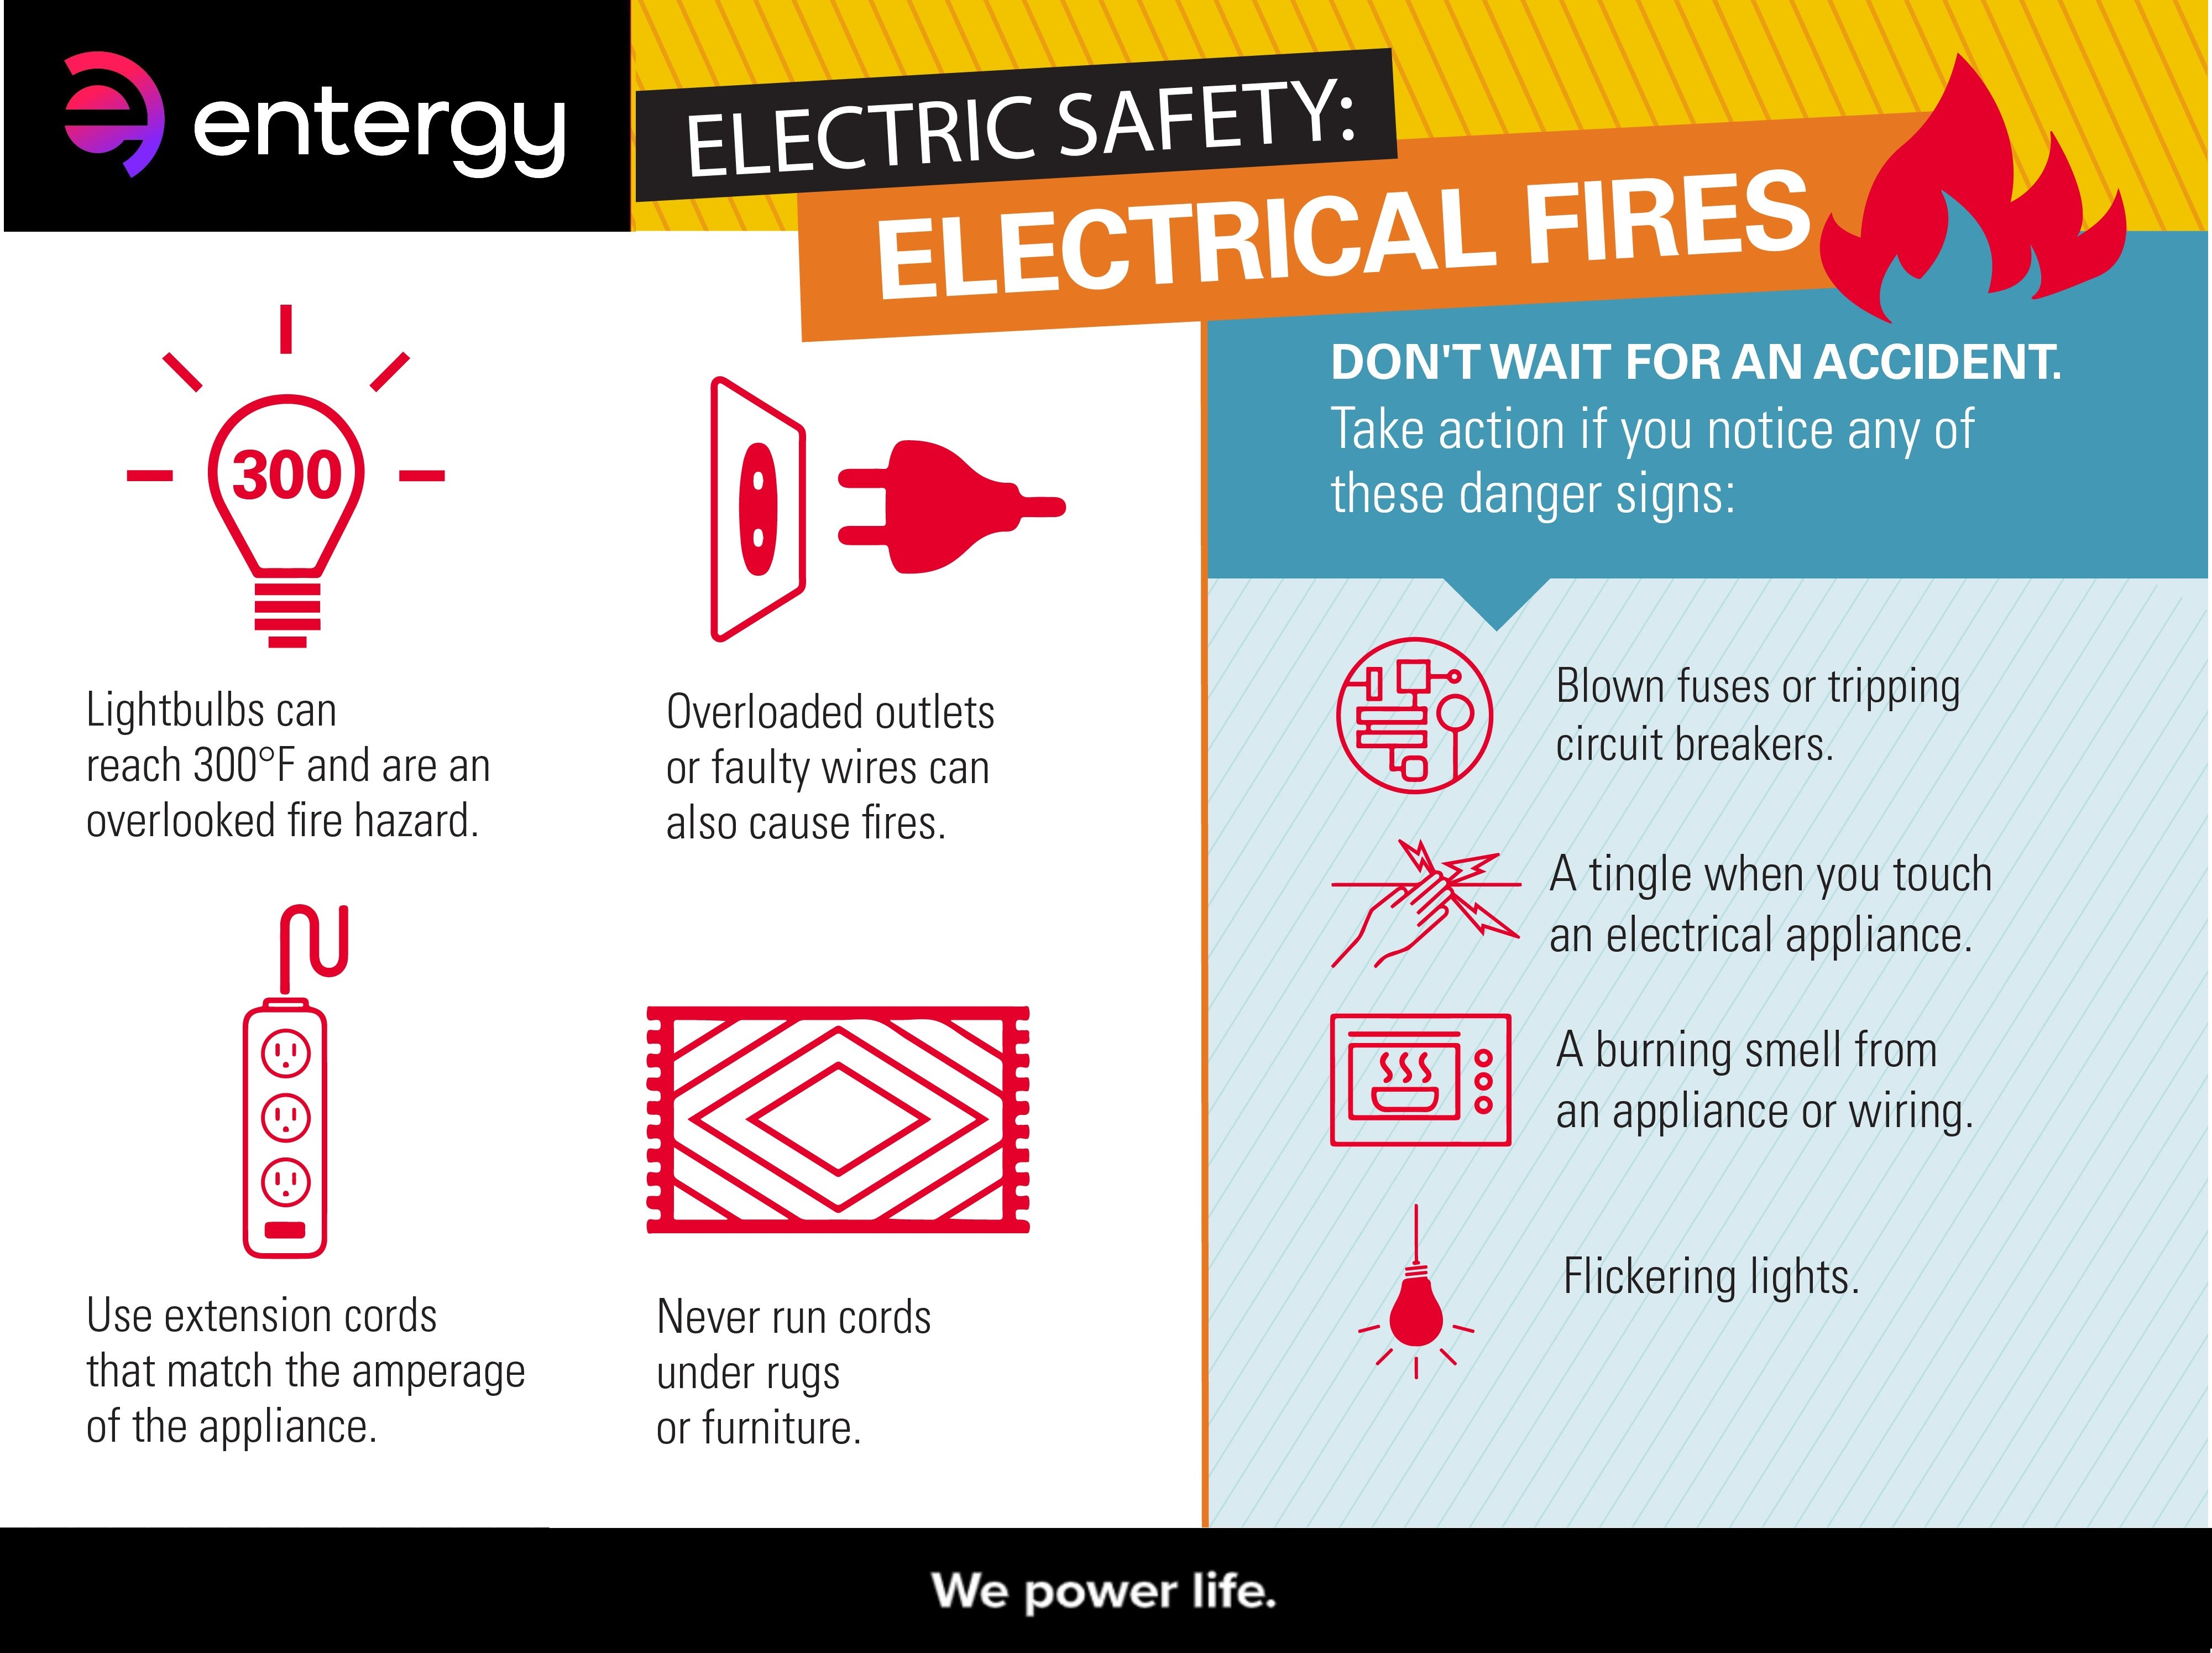 Electric Safety Electrical Fires